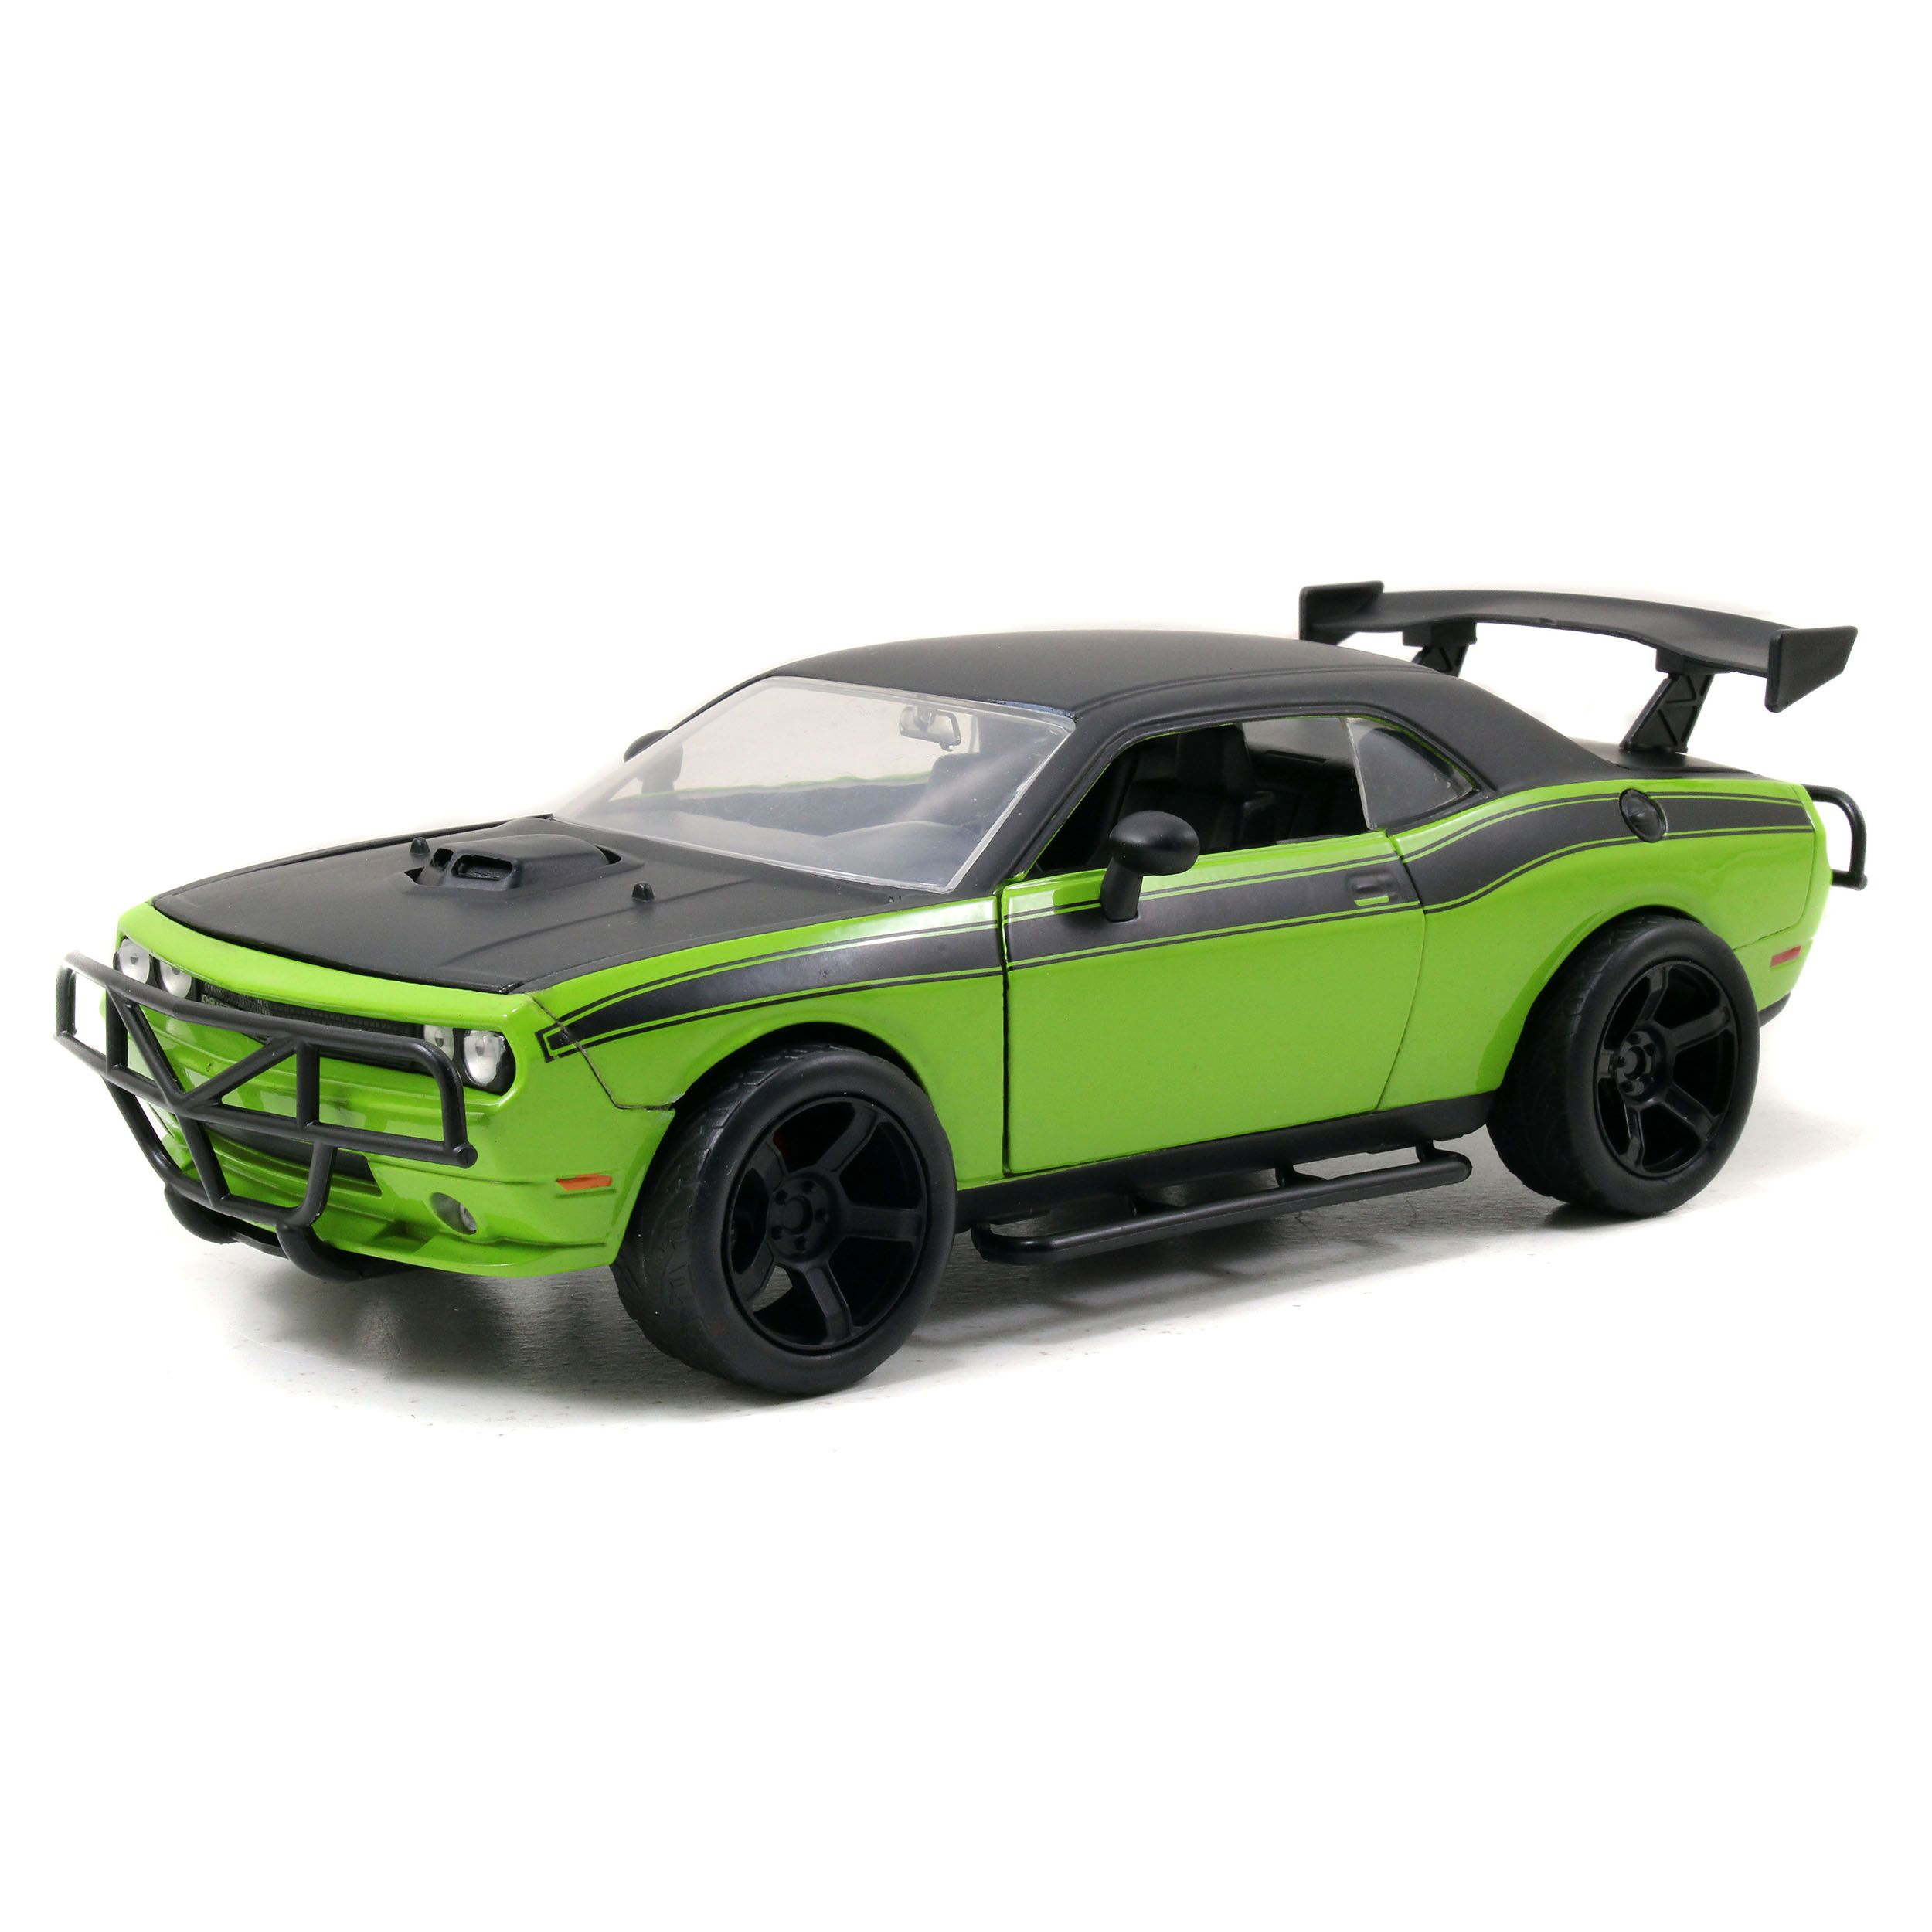 Jada toys fast and furious 1 24 scale die cast dodge challenger